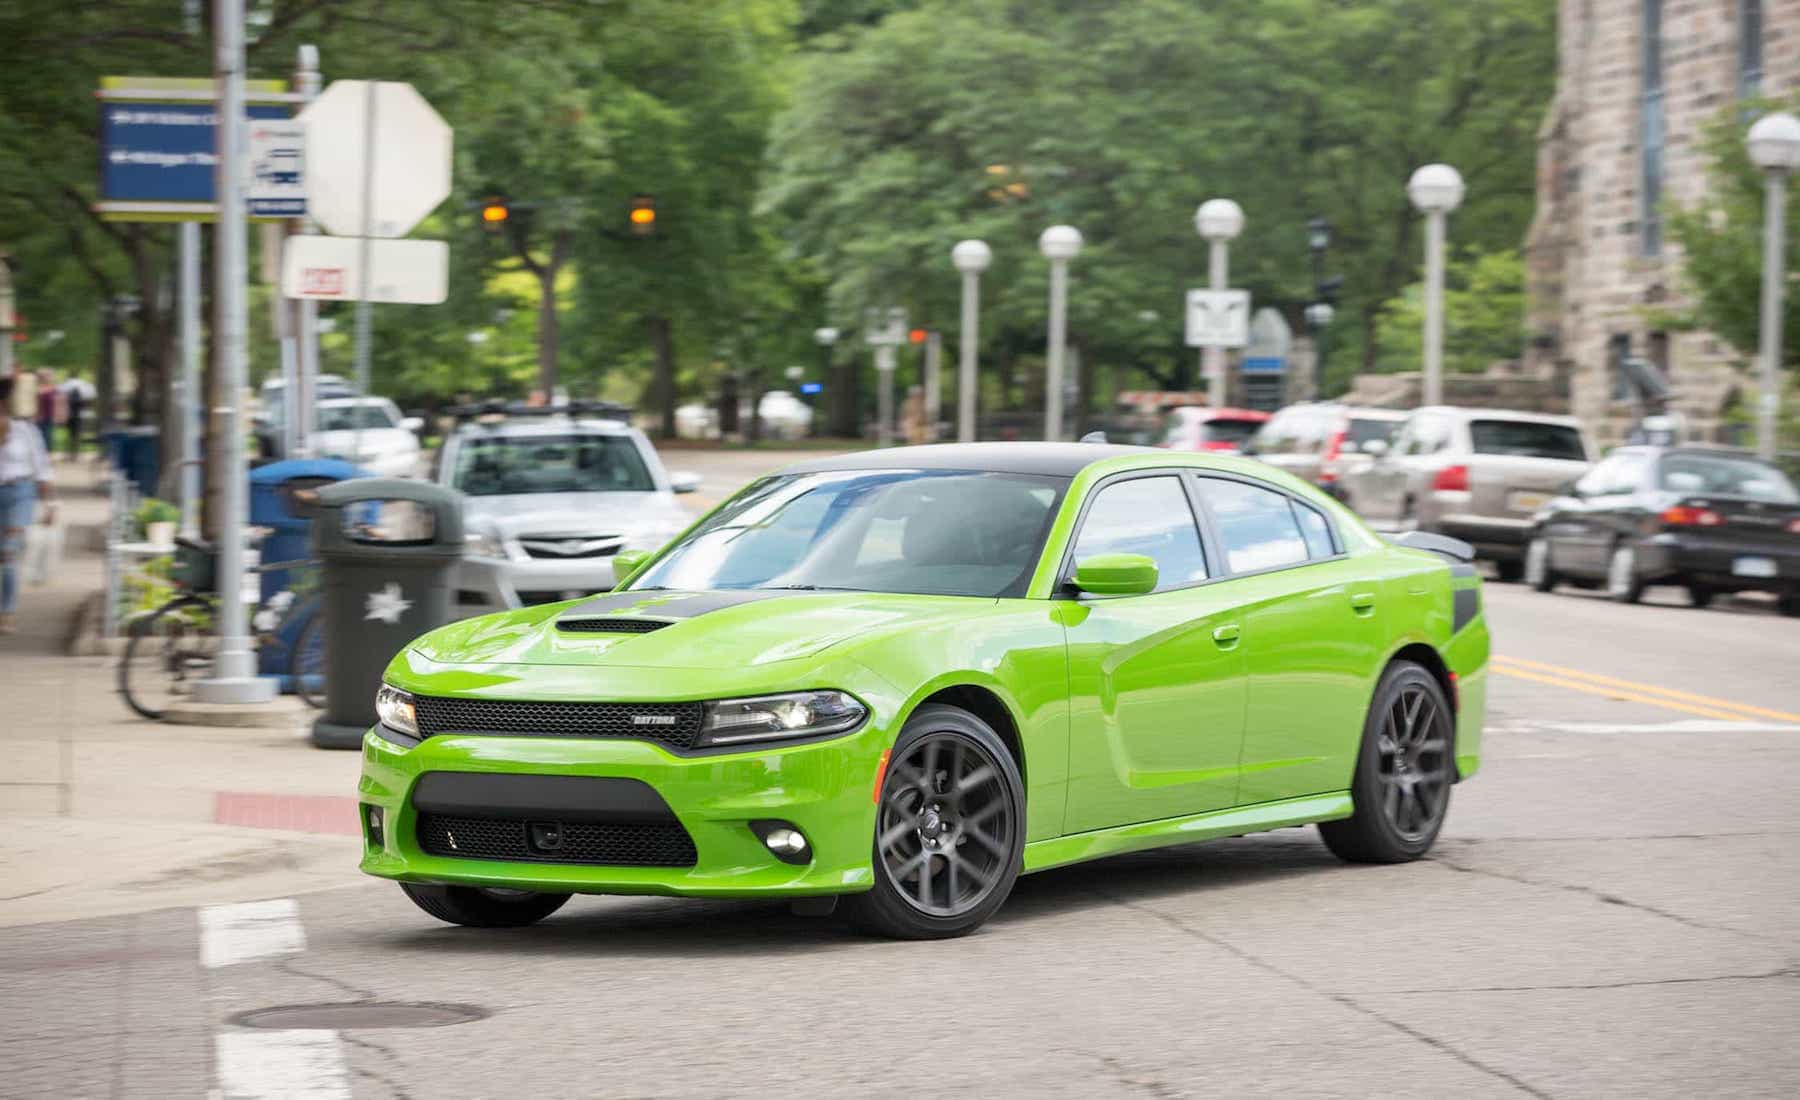 2017 Dodge Charger Daytona  (Photo 16 of 38)